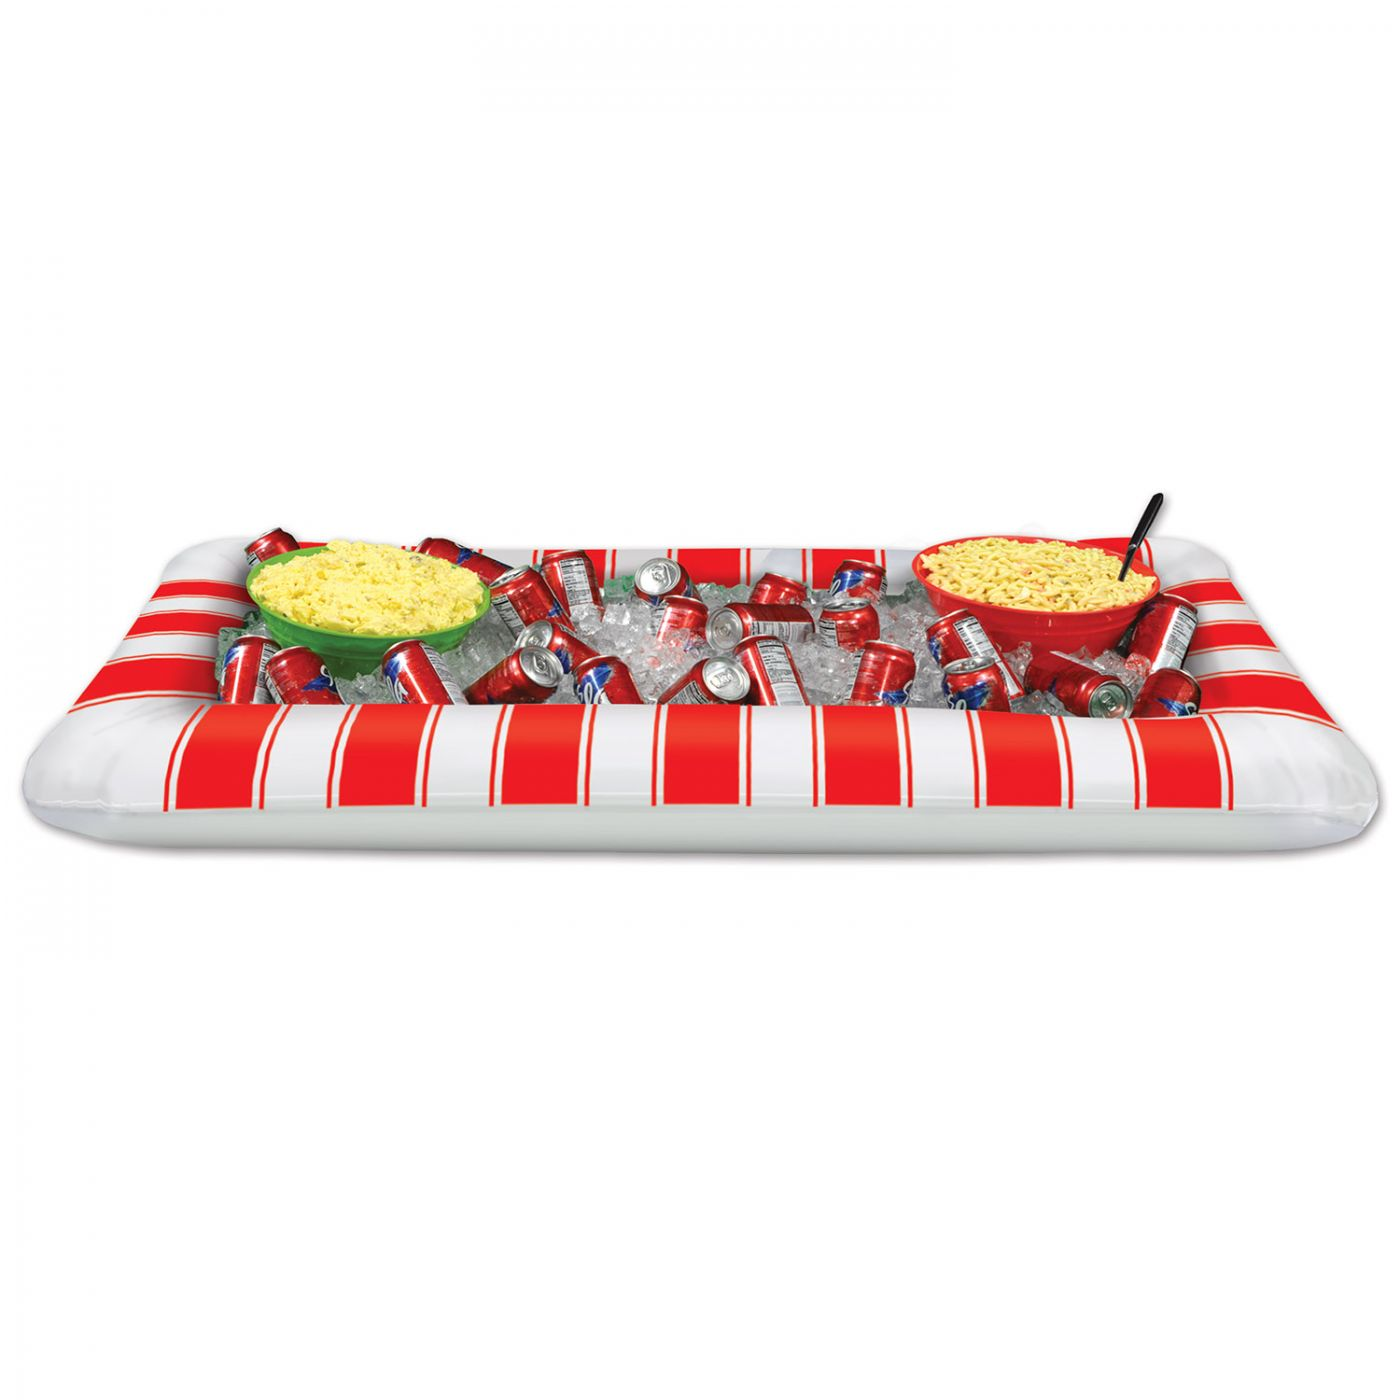 Inflatable Red&White Stripes Buffet Clr (6) image